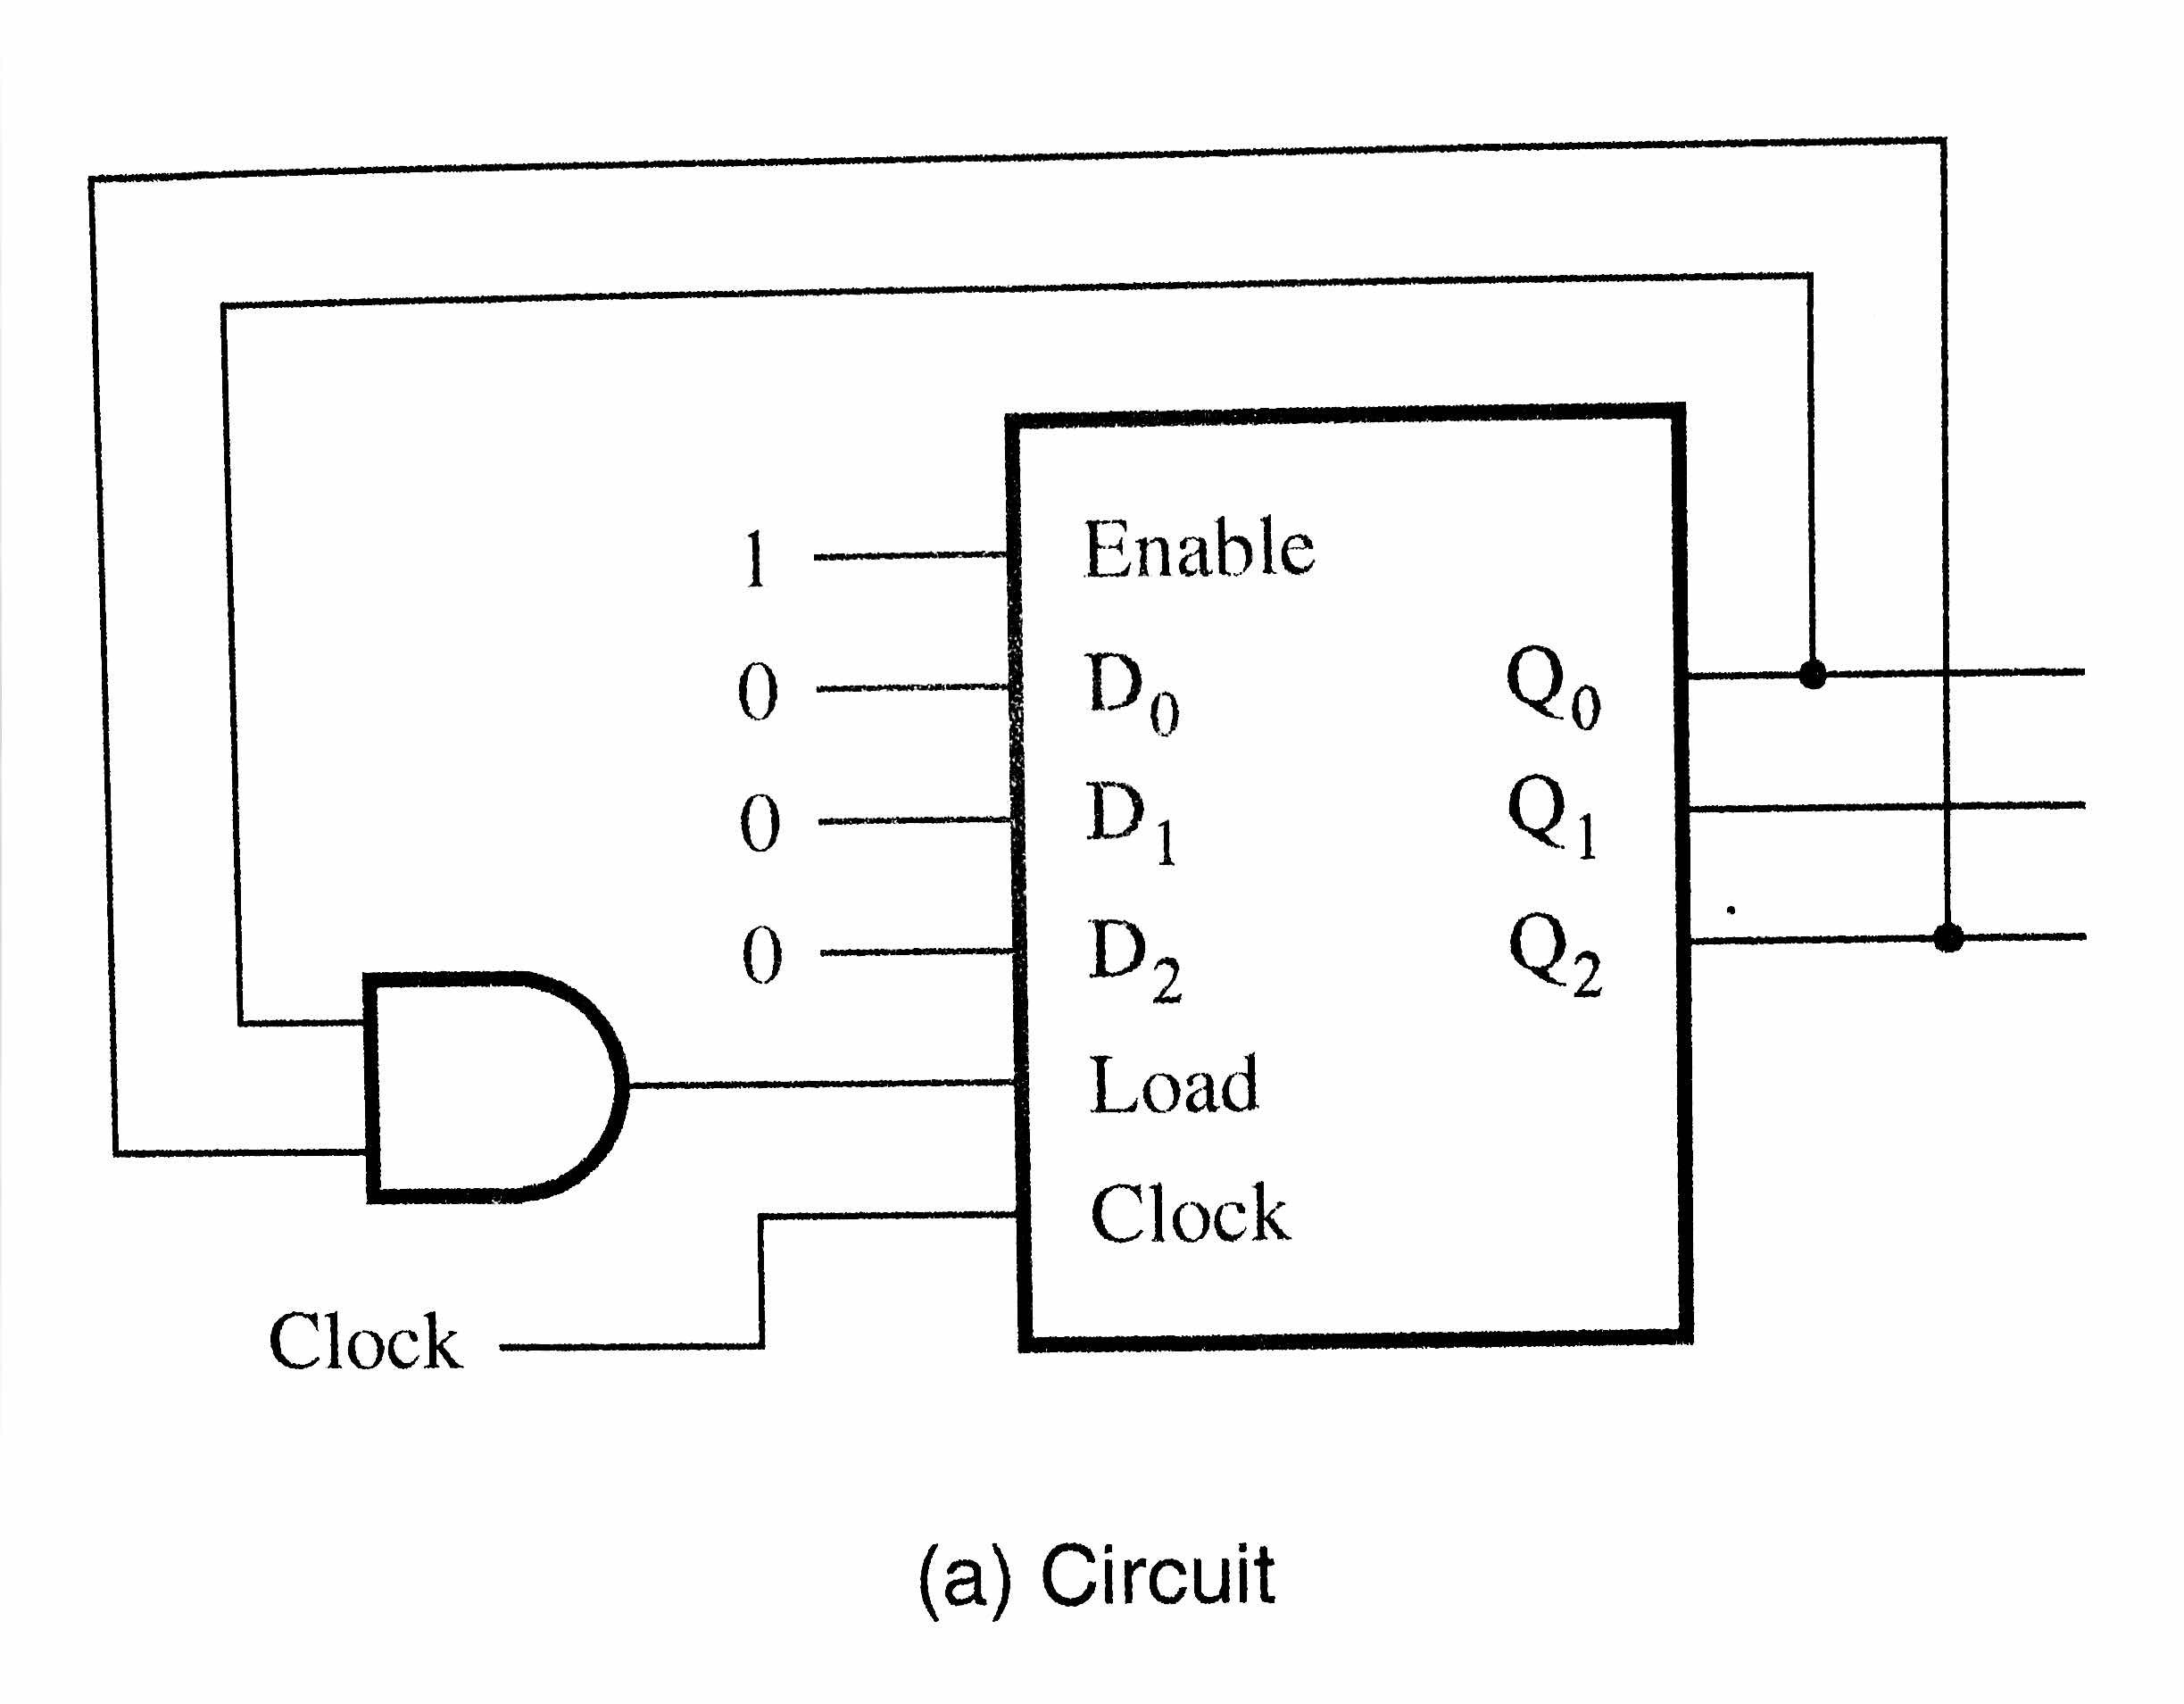 Solved: Draw The Circuit For A Mod-10 Counter (also Known